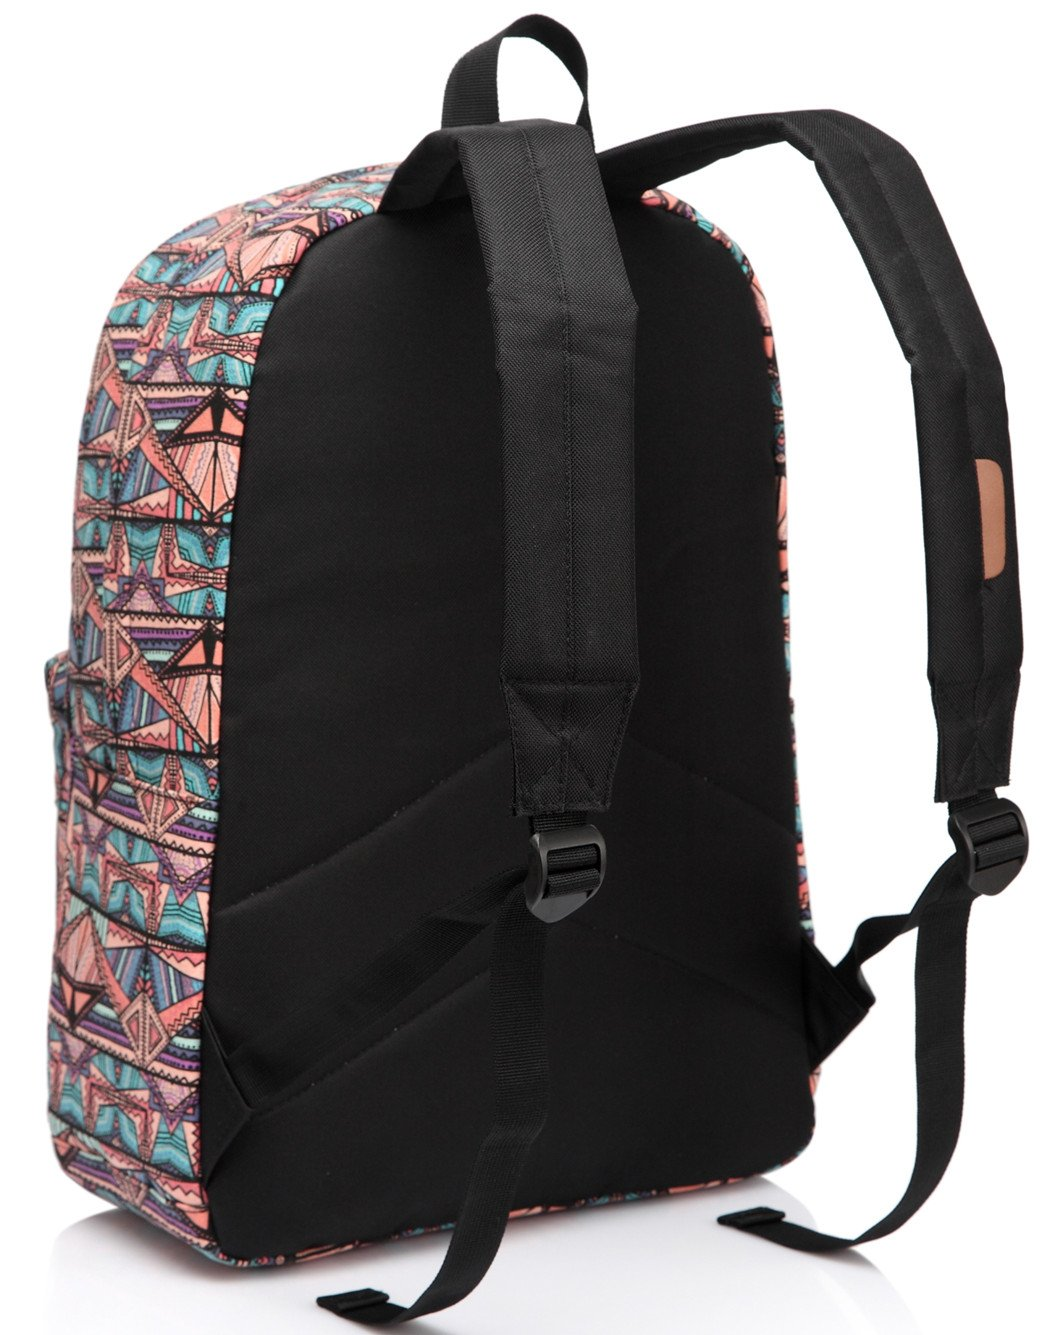 School Backpack for Teen Girls,Fashion Canvas Rucksack BookBag with Padded Laptop Sleeve by Vaschy (Image #6)